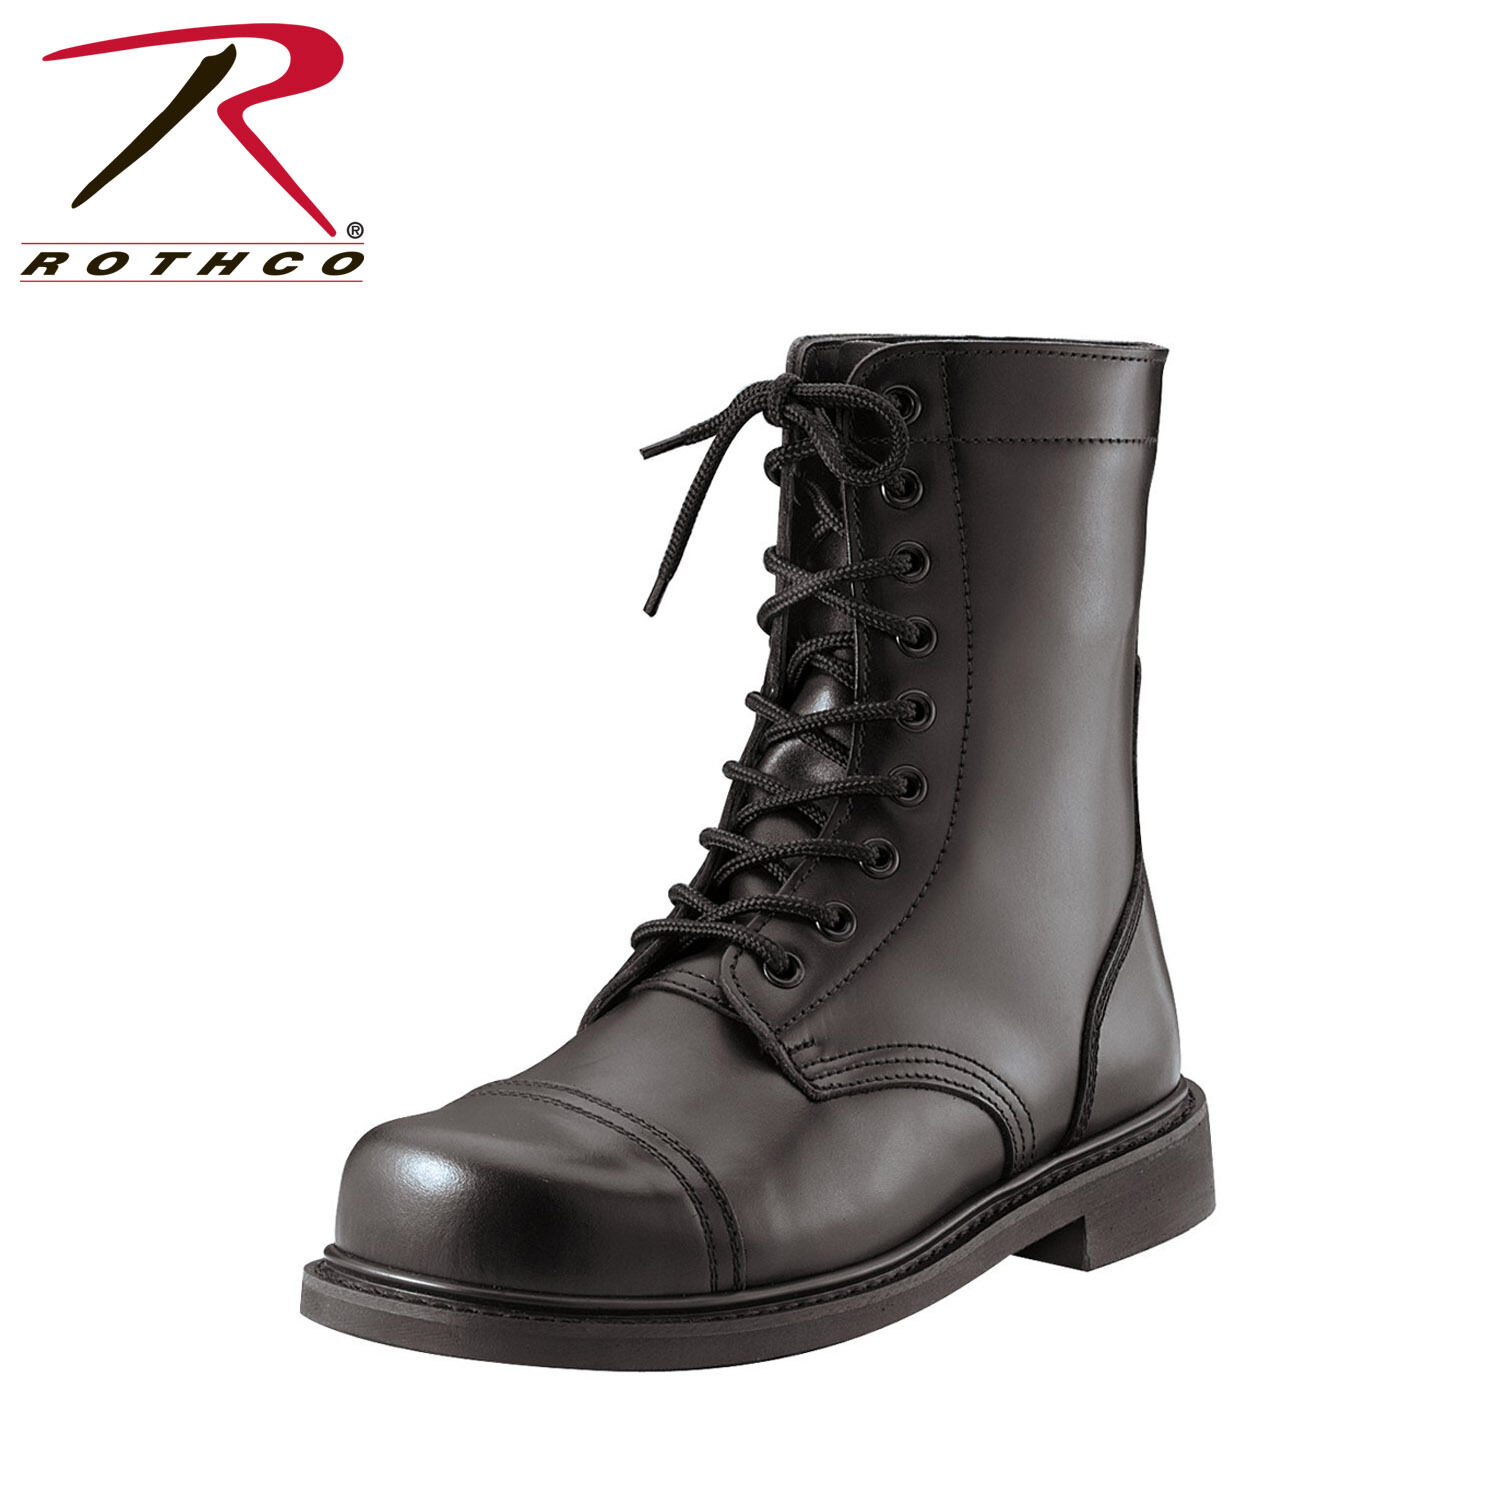 Rothco 5075 G.I. Type Combat Boot - Black